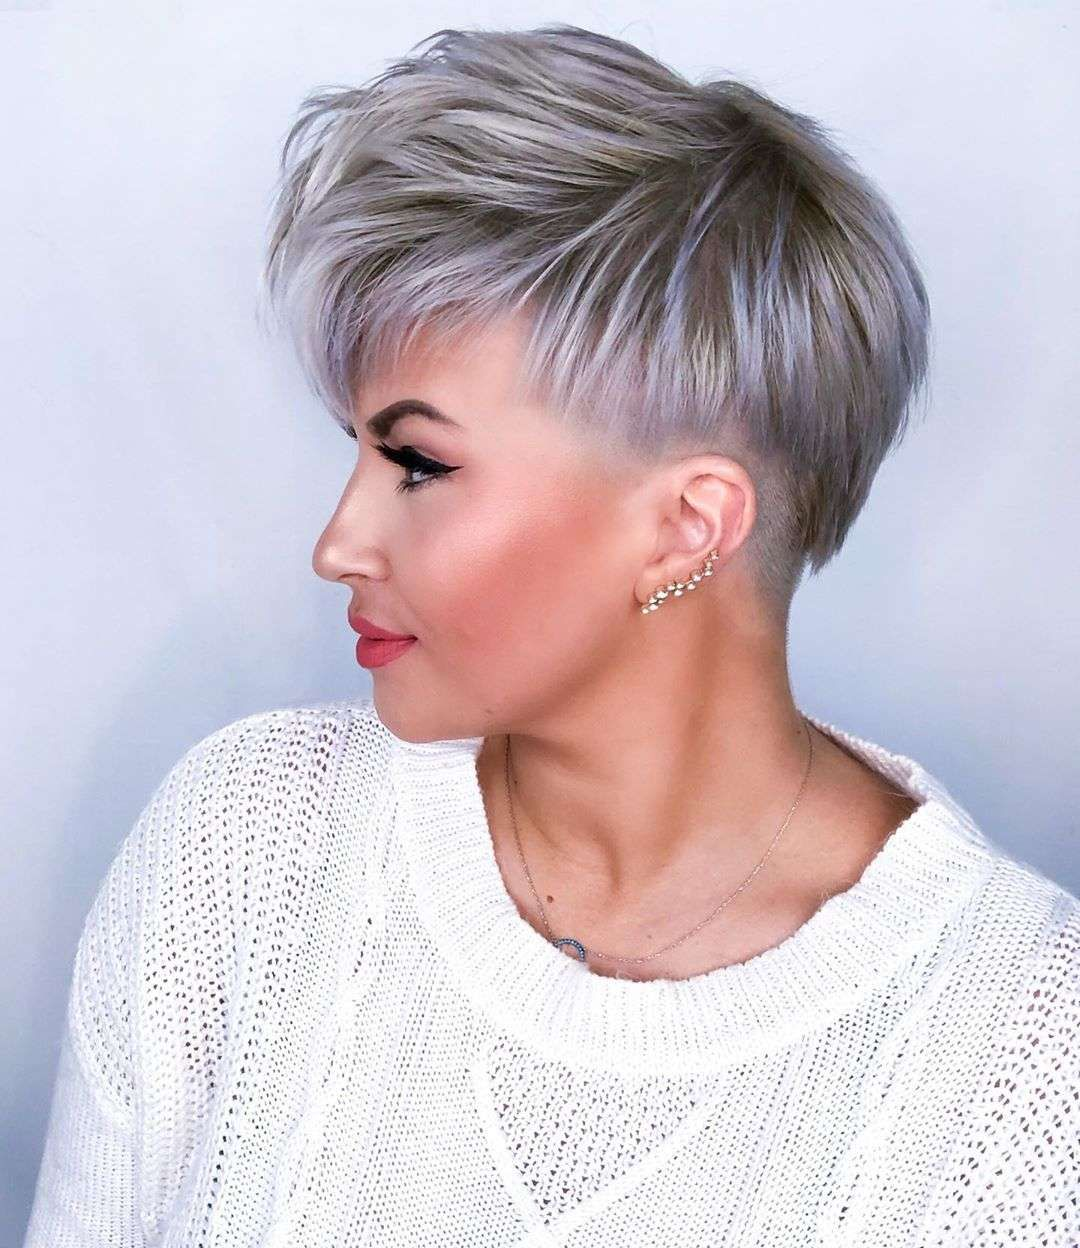 Short Hairstyle Models The Indispensable Of Modern Appearance Short Hair Styles Short Hair Undercut Undercut Hairstyles